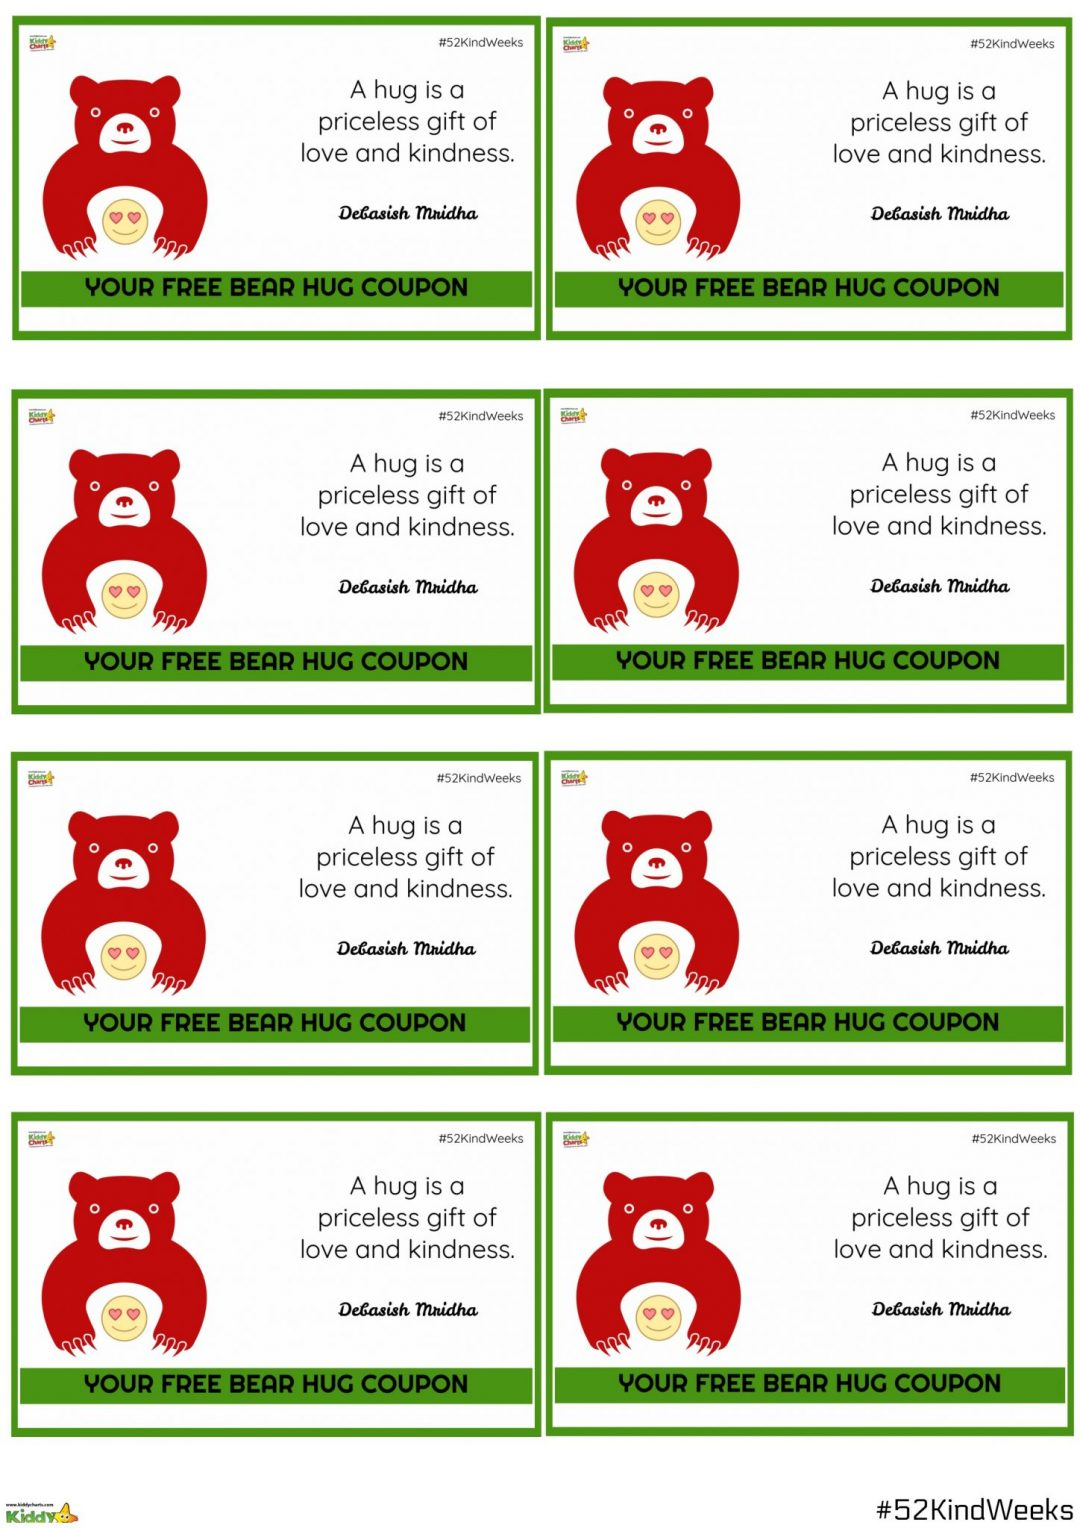 We have some free bear coupons to give out whenever you want! #bekind2017 #kindness #raok